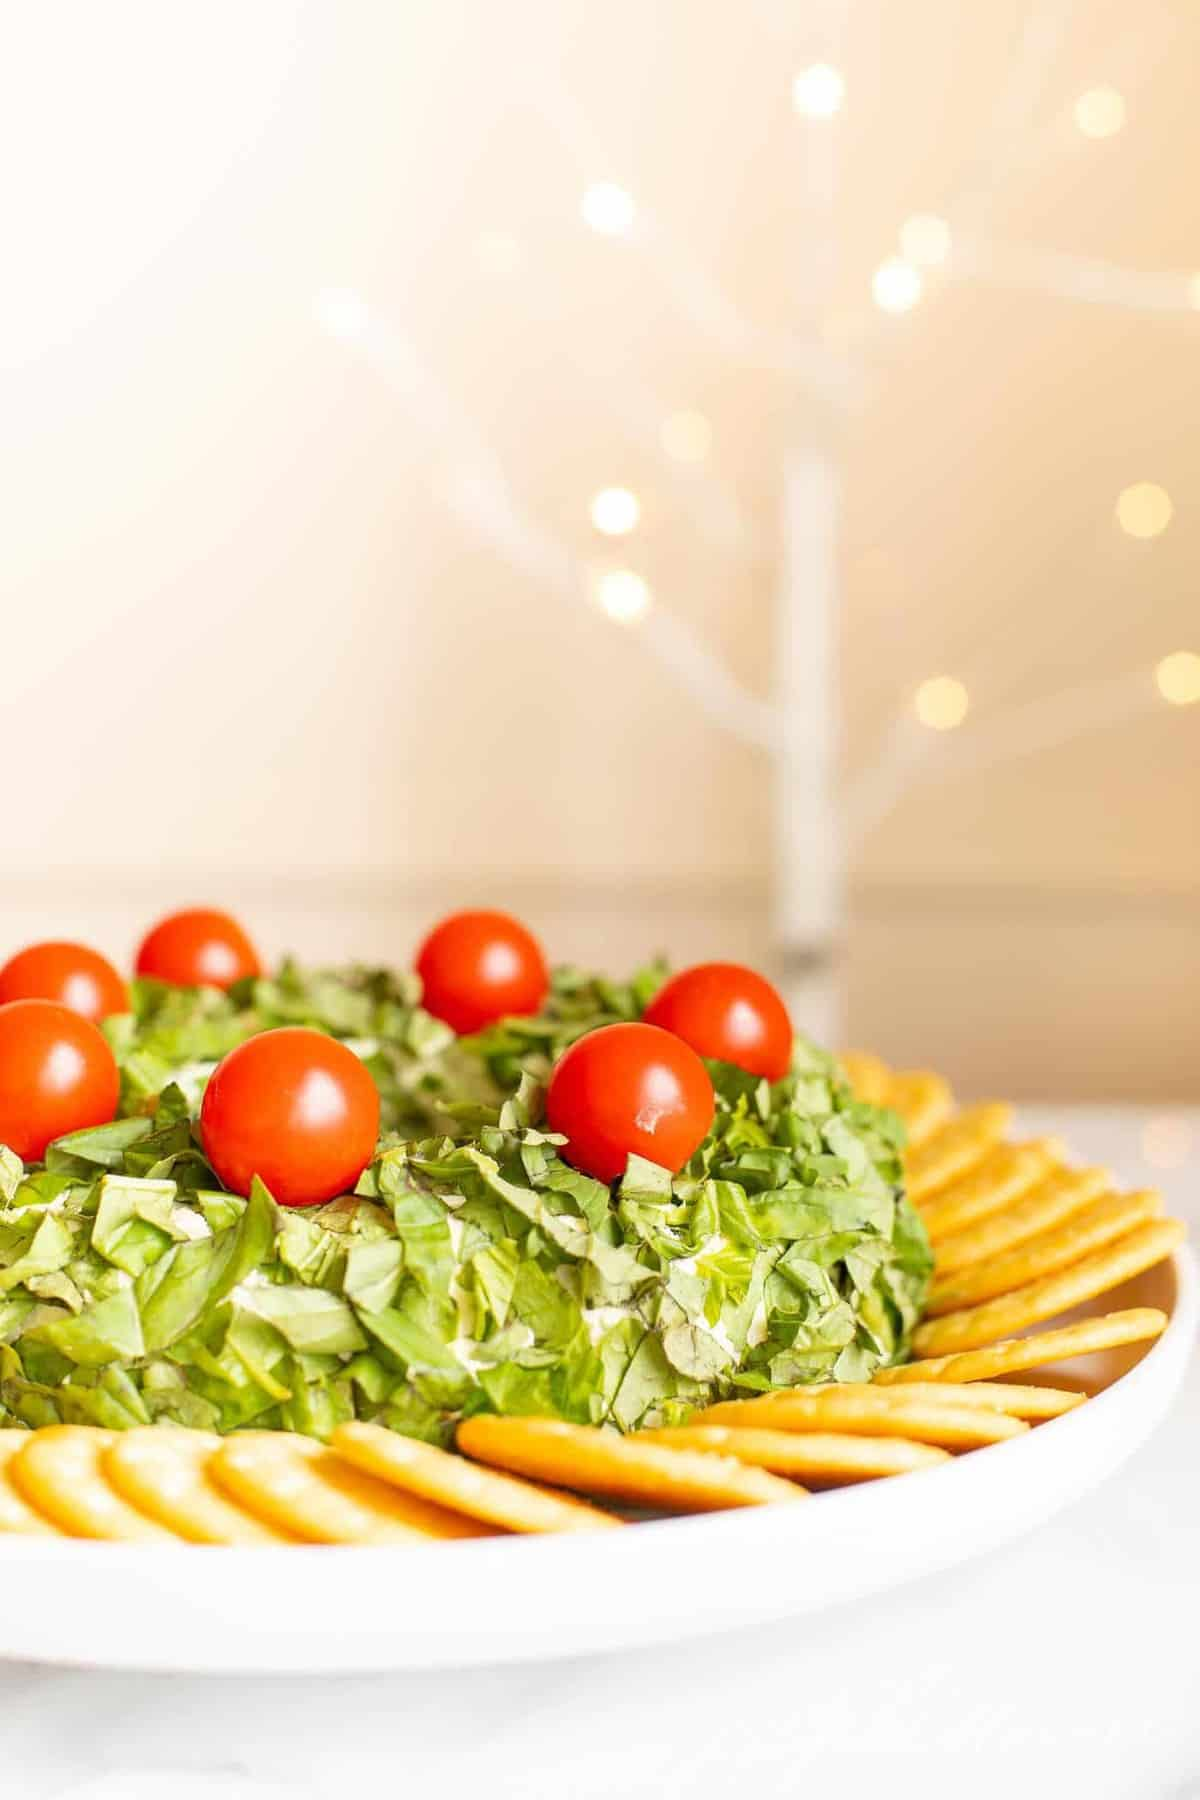 A pesto cheeseball Christmas wreath appetizer surrounded by crackers on a platter.